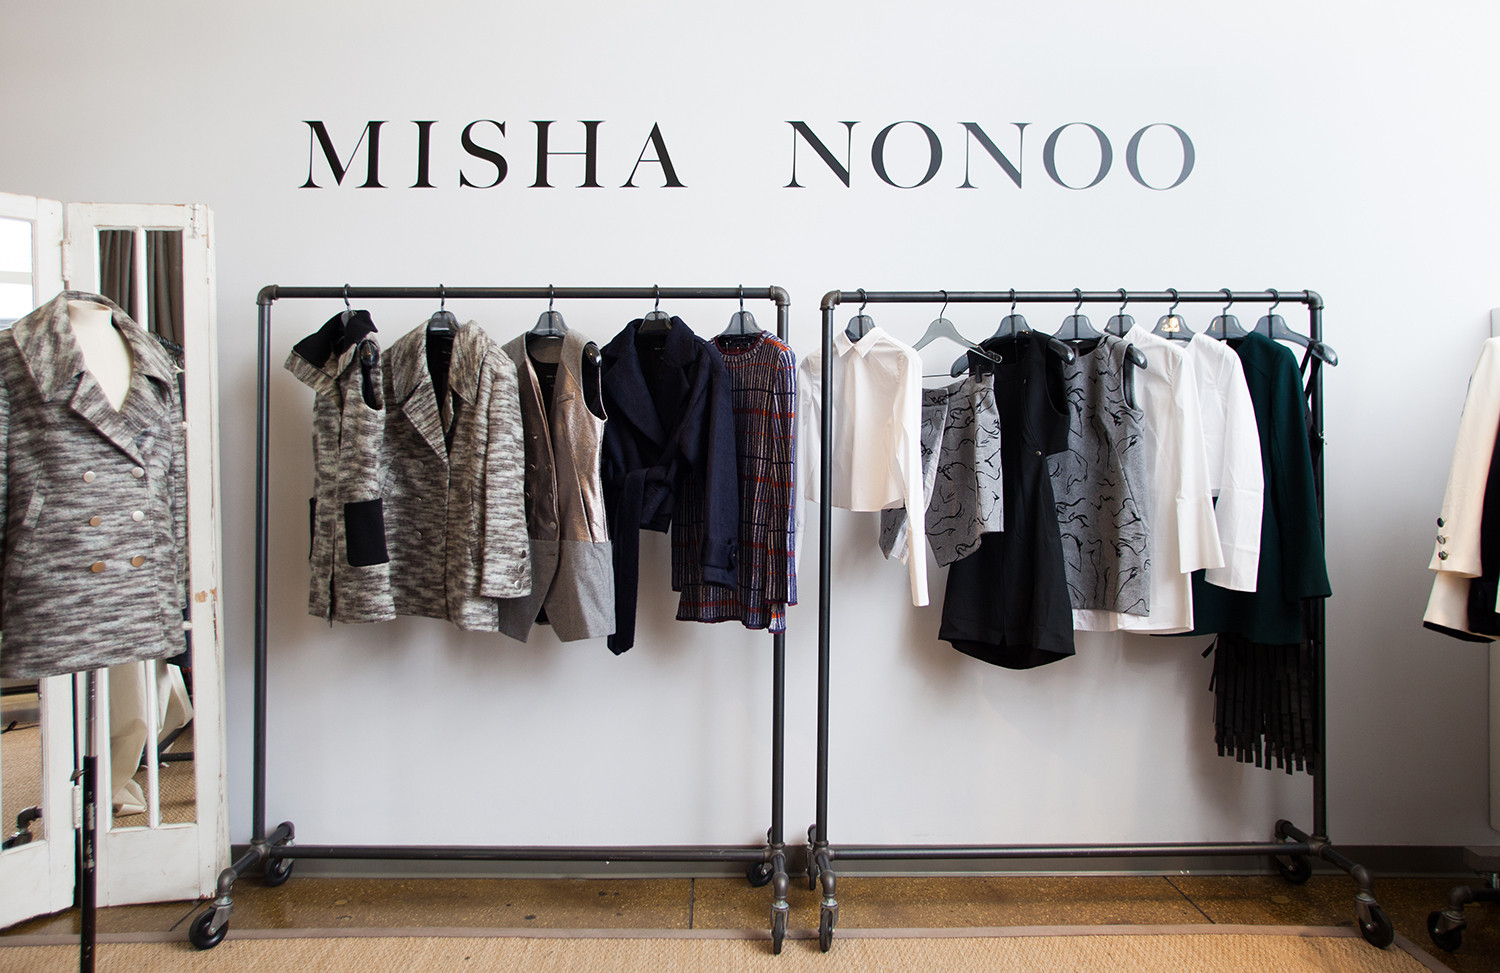 Fashion designer Misha Nonoo's New York City studio in the Council of Fashion Designers of America's collaborative incubator.